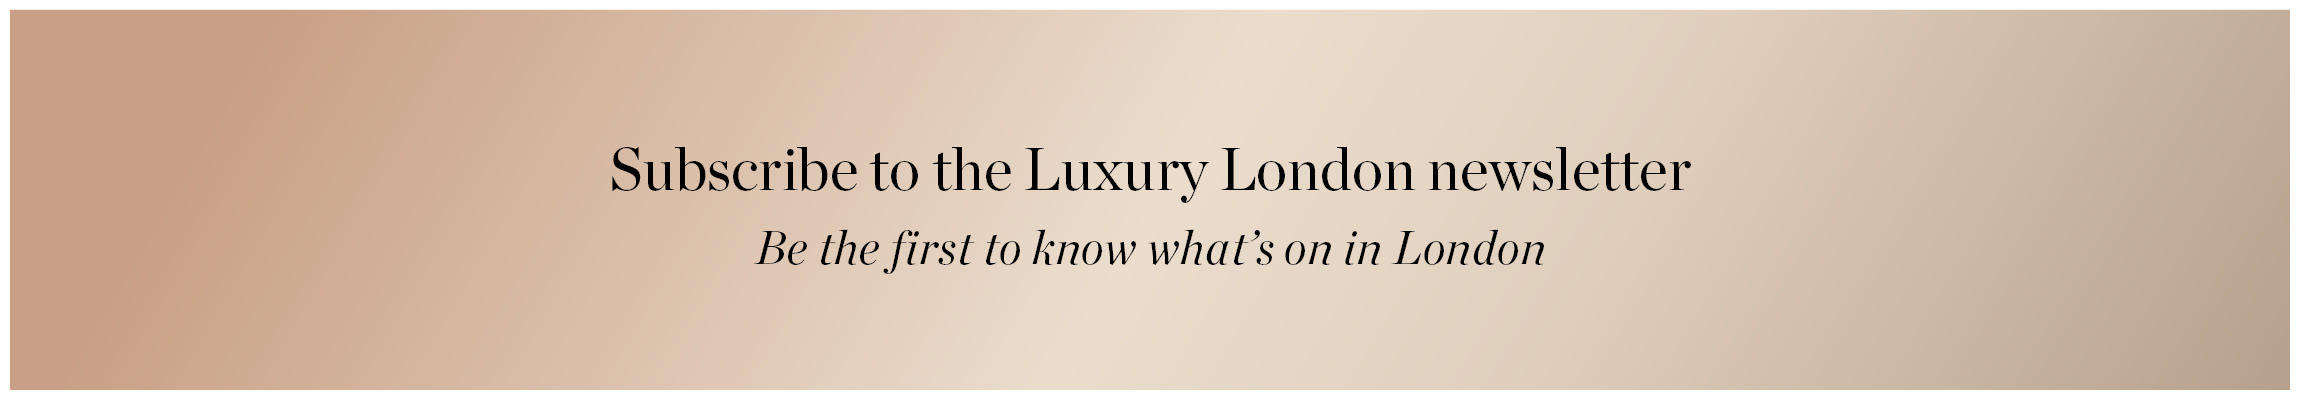 Subscribe to the Luxury London newsletter